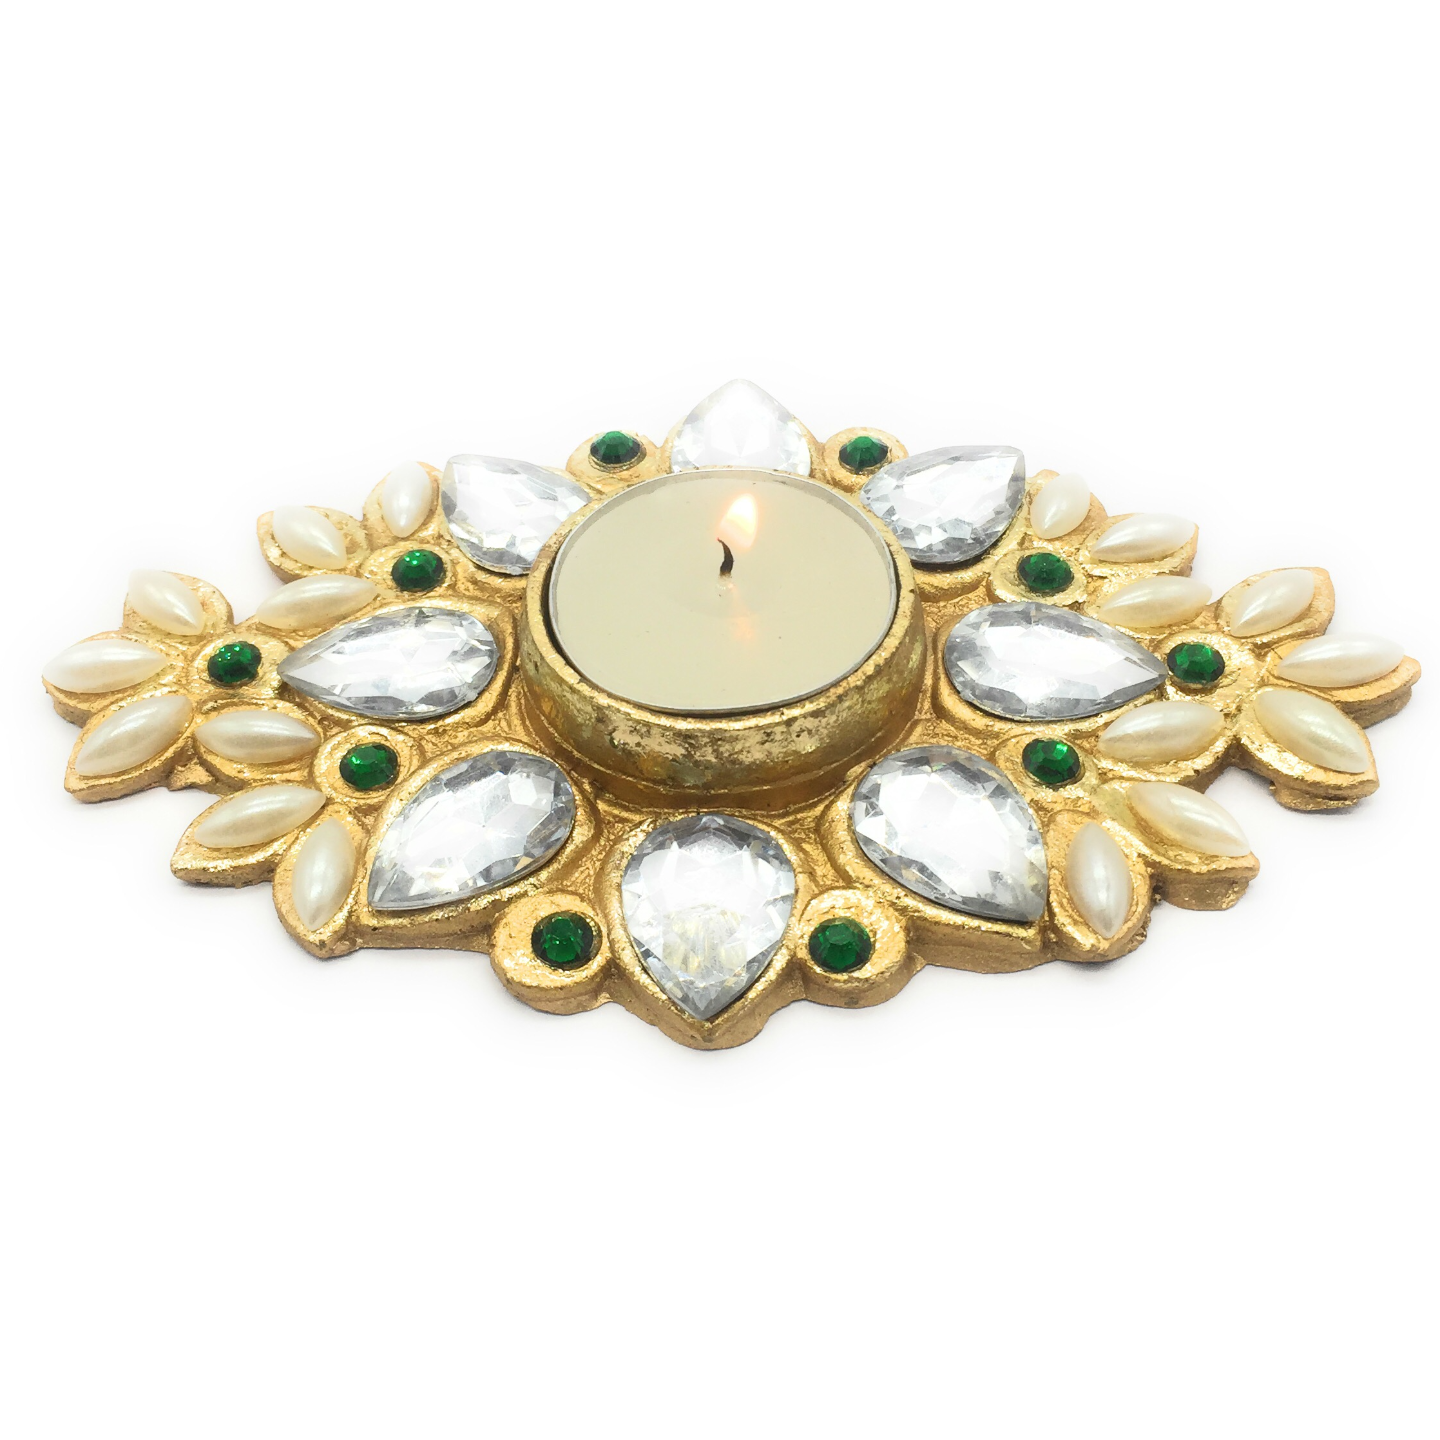 AuraDecor Ethnic Finish Tealight Holder with a Tealight Free